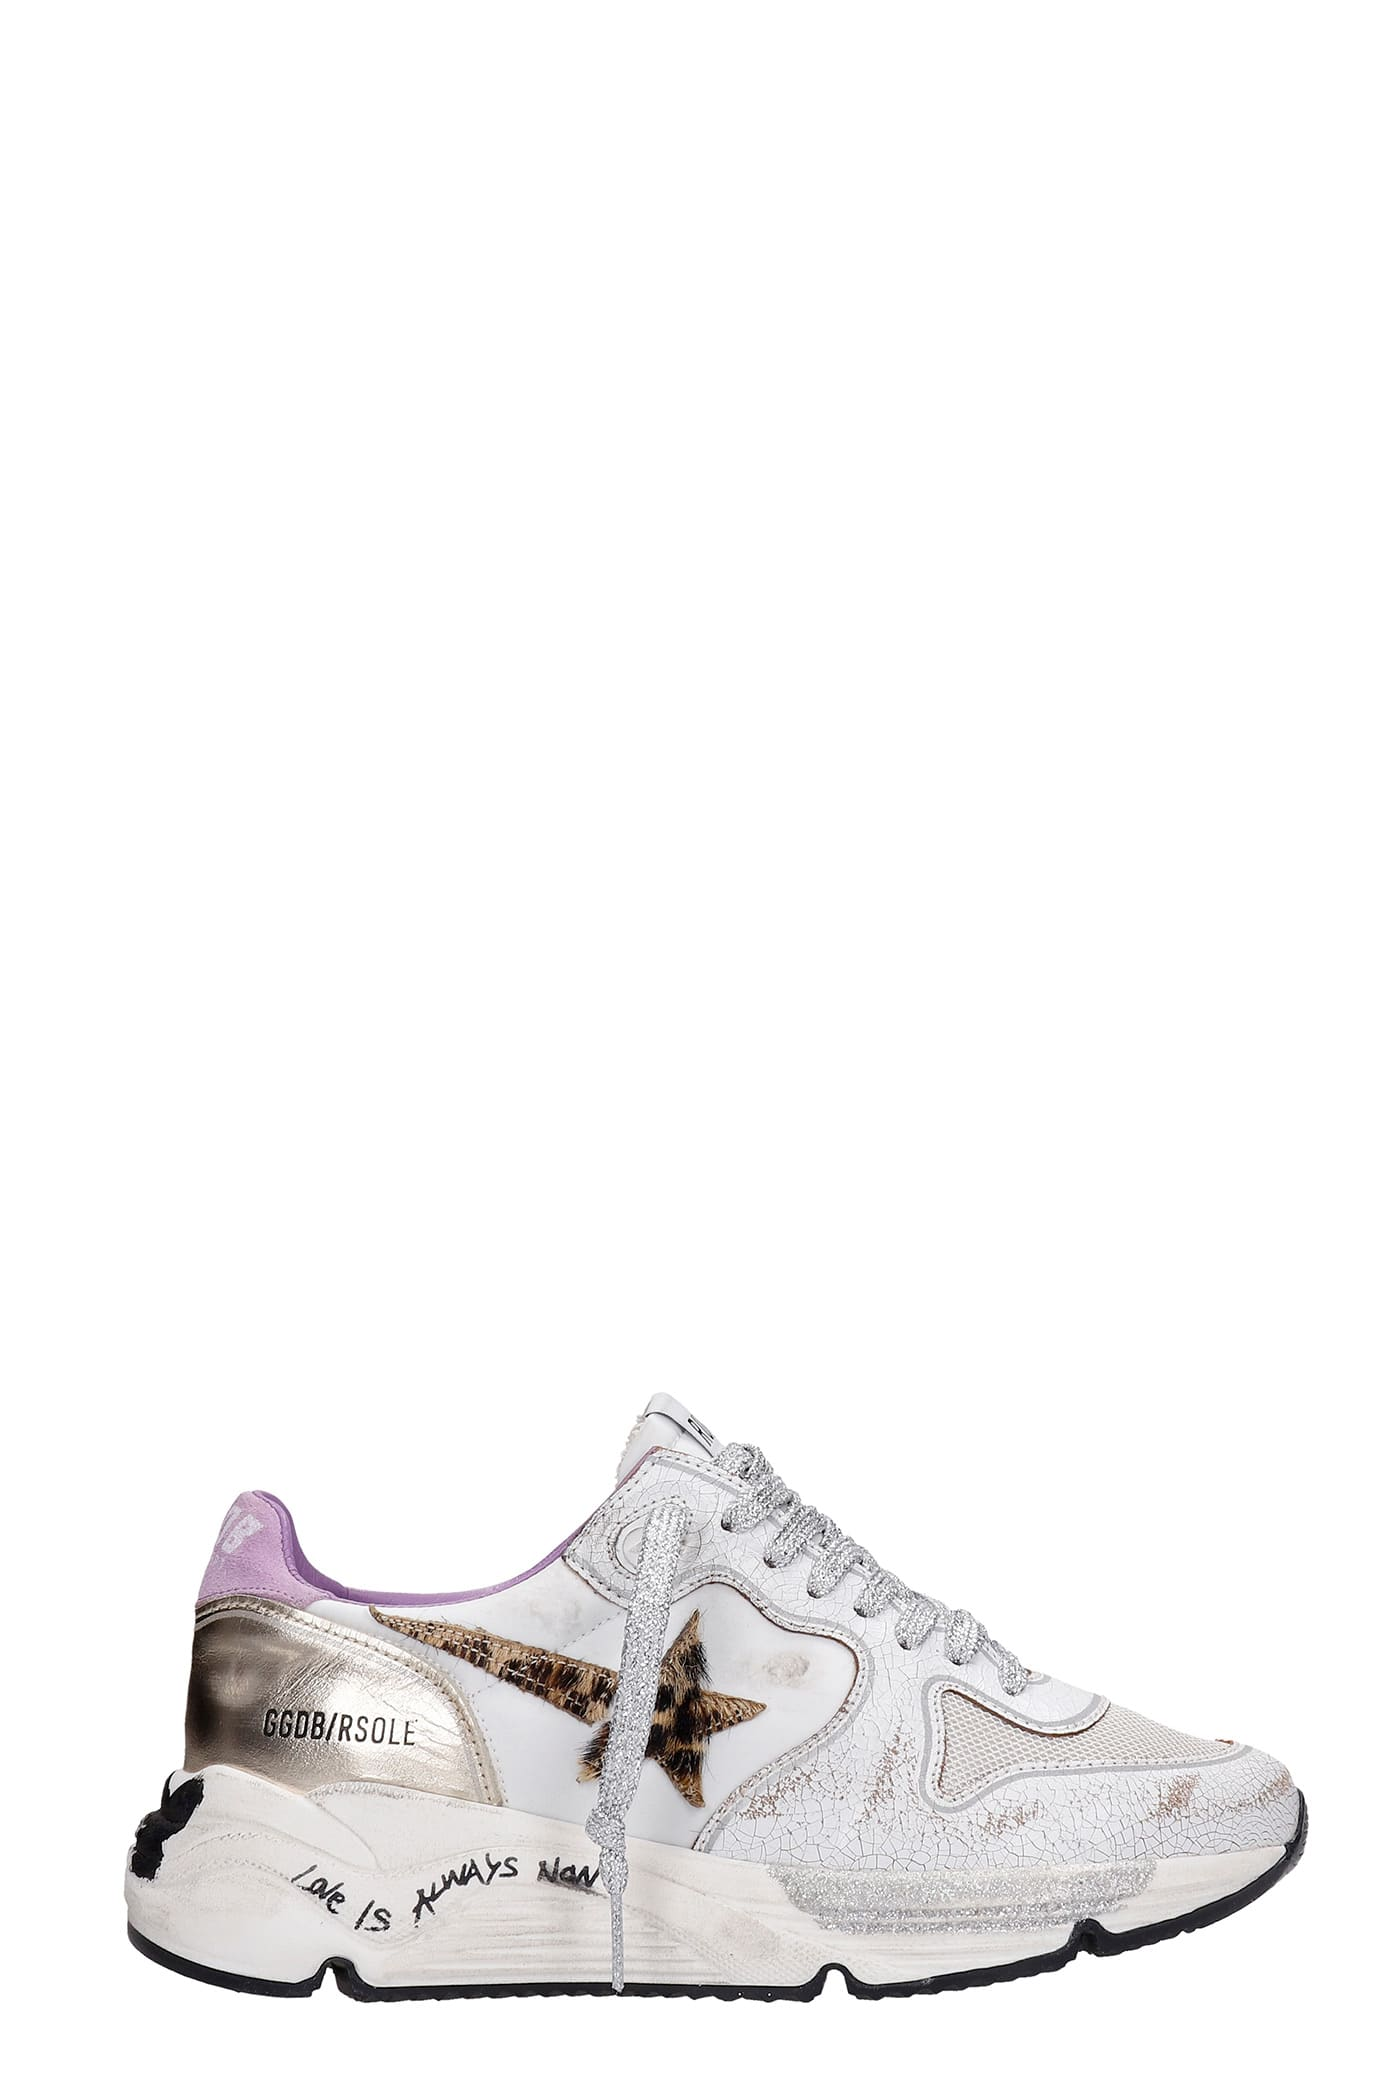 Golden Goose Running Sneakers In White Synthetic Fibers